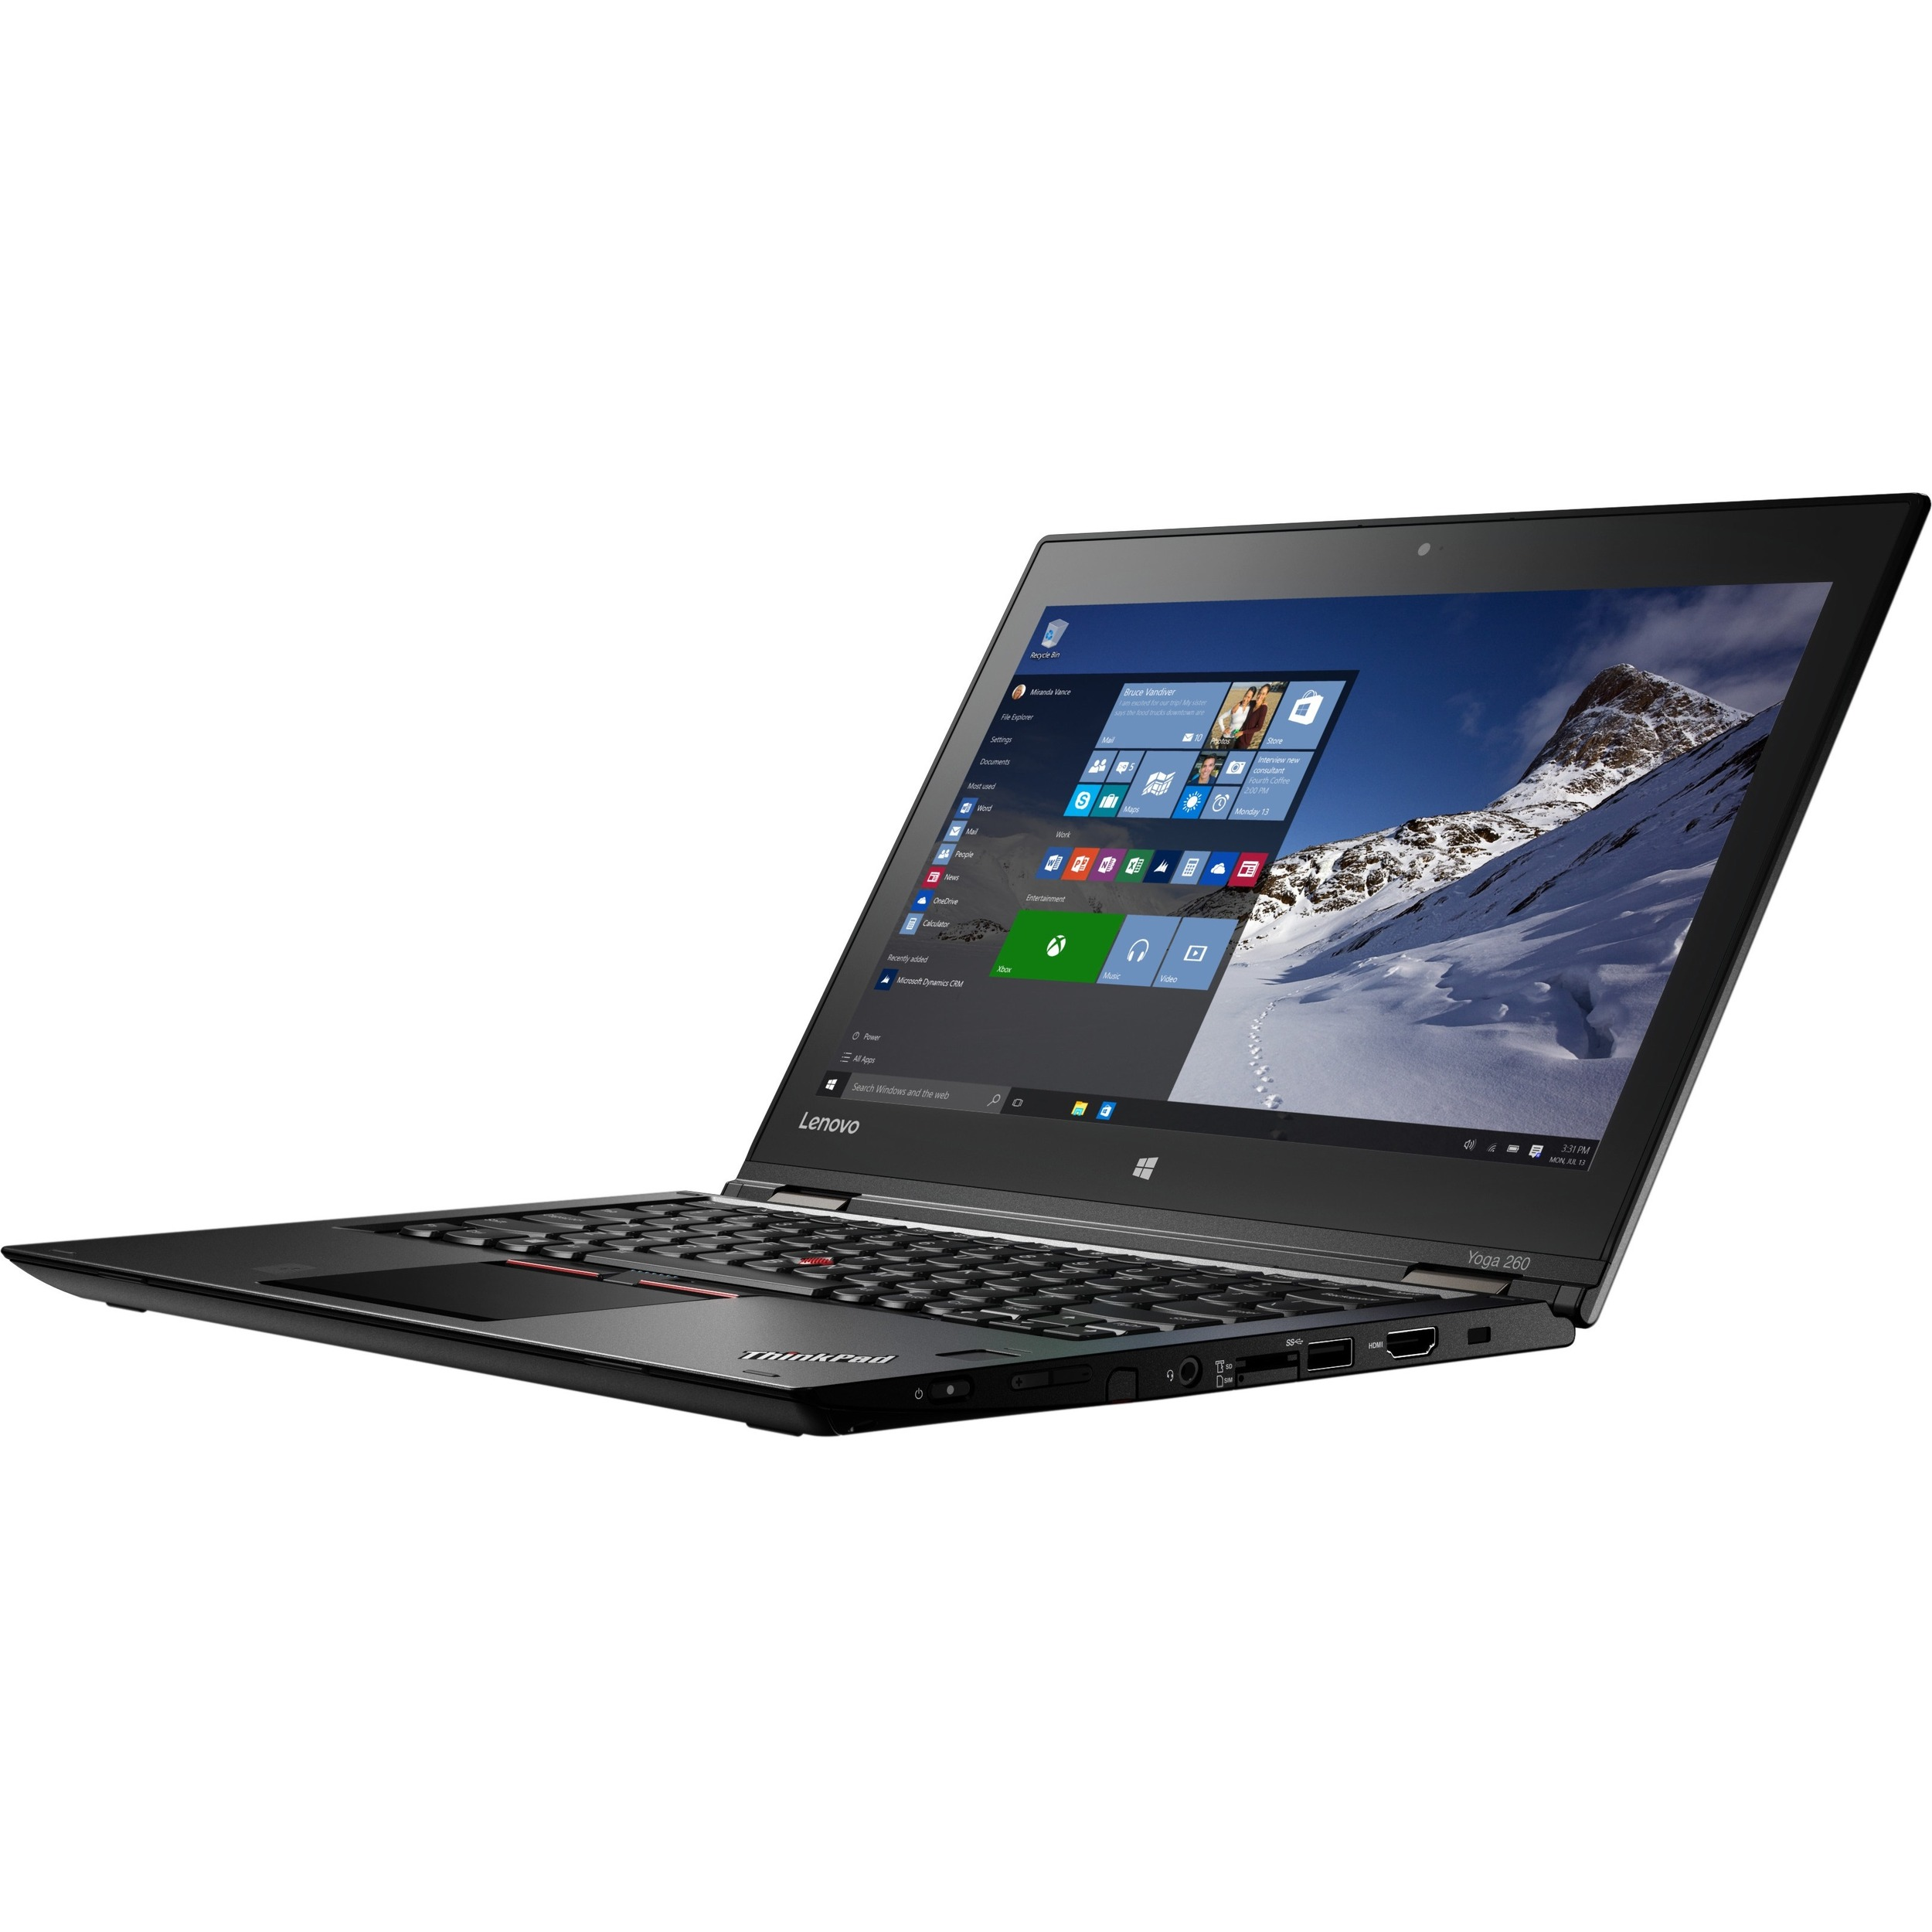 Lenovo ThinkPad Yoga 260 20FD0048UK 12.5inch Touchscreen LCD 2 in 1 Ultrabook - Intel Core i7 6th Gen